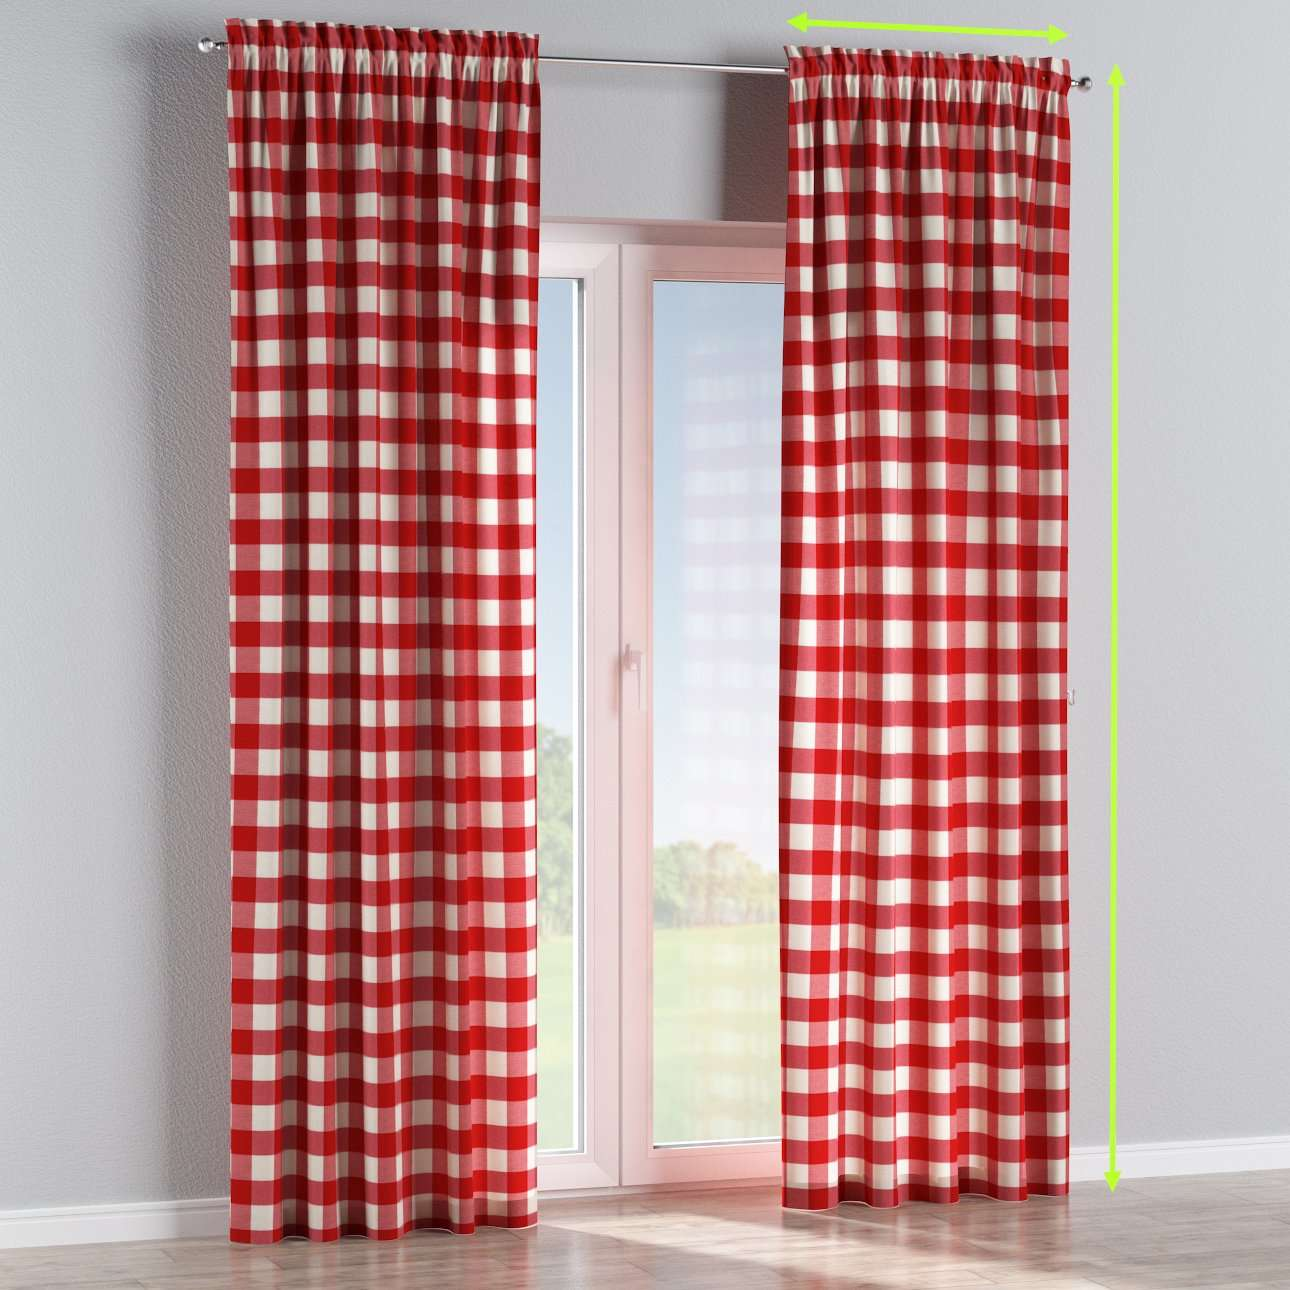 Slot and frill lined curtains in collection Quadro, fabric: 136-18